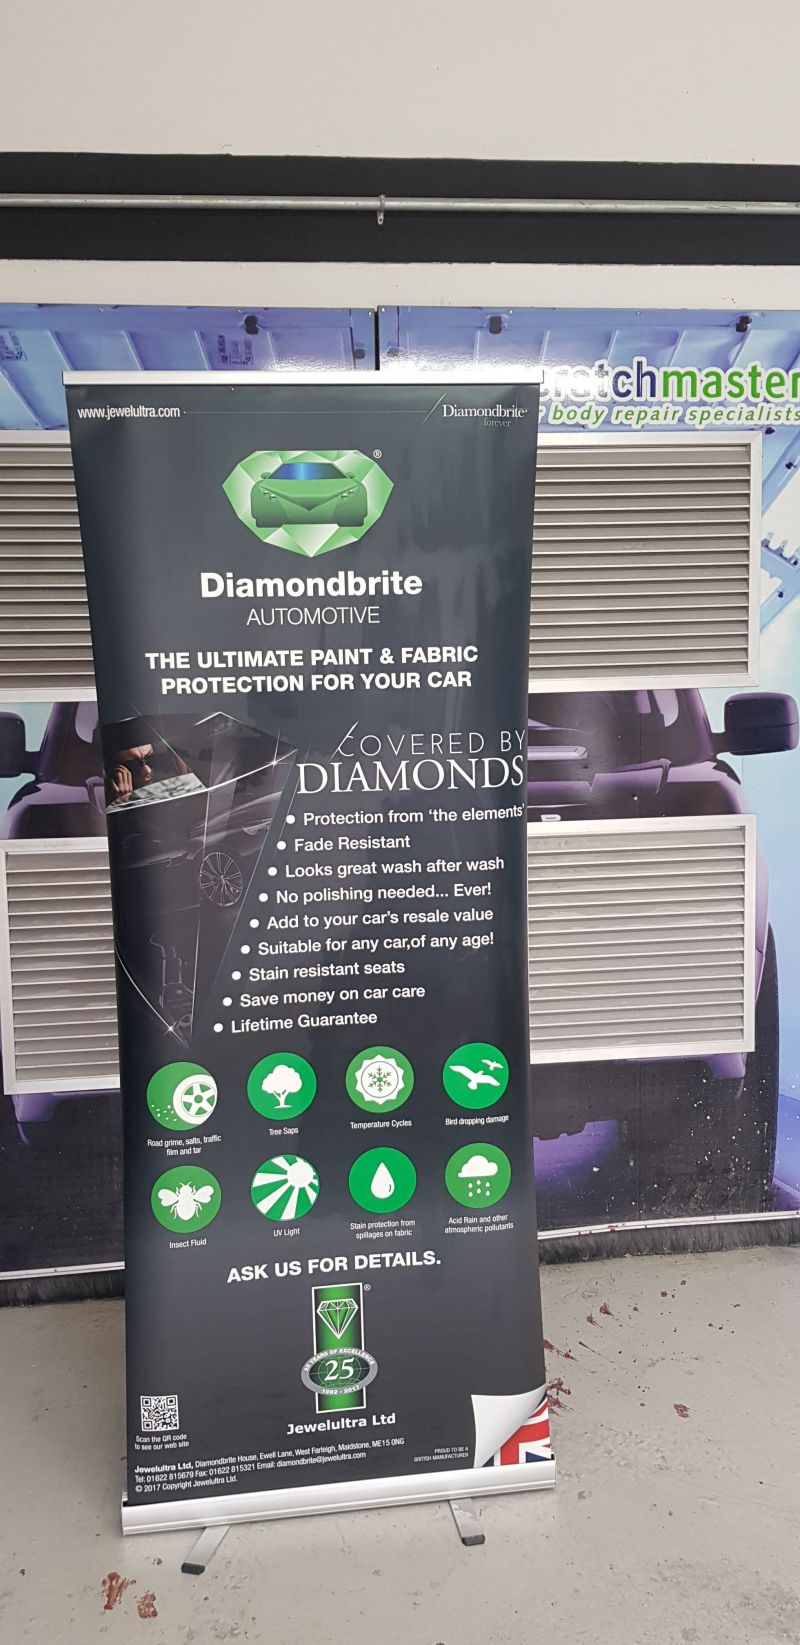 Diamondbrite paint protection by Scratchmaster Nottingham : Swipe To View More Images